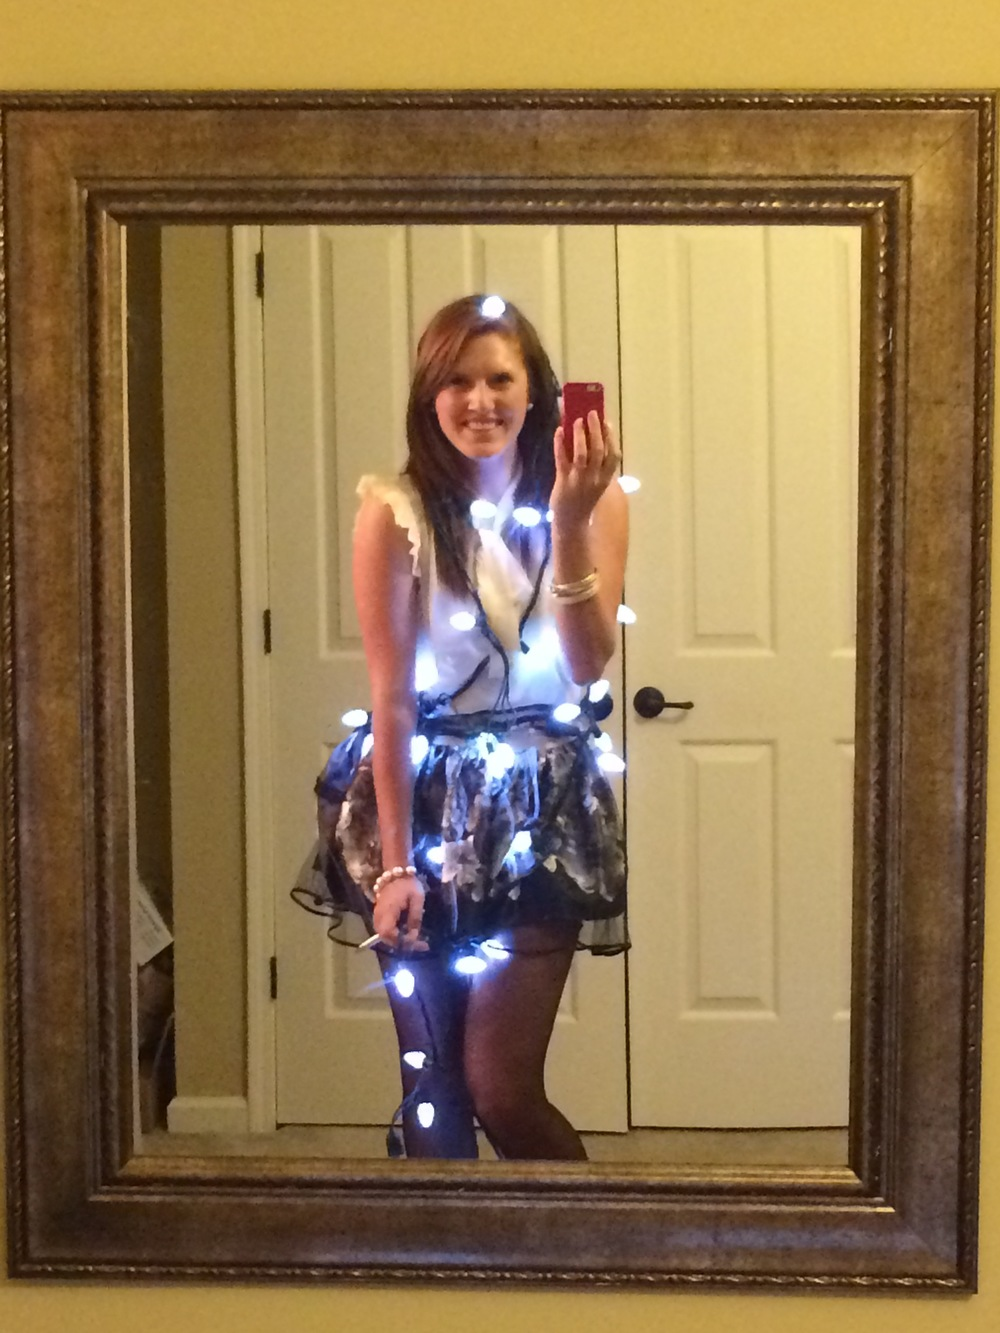 Christmas Light Outfit.JPG